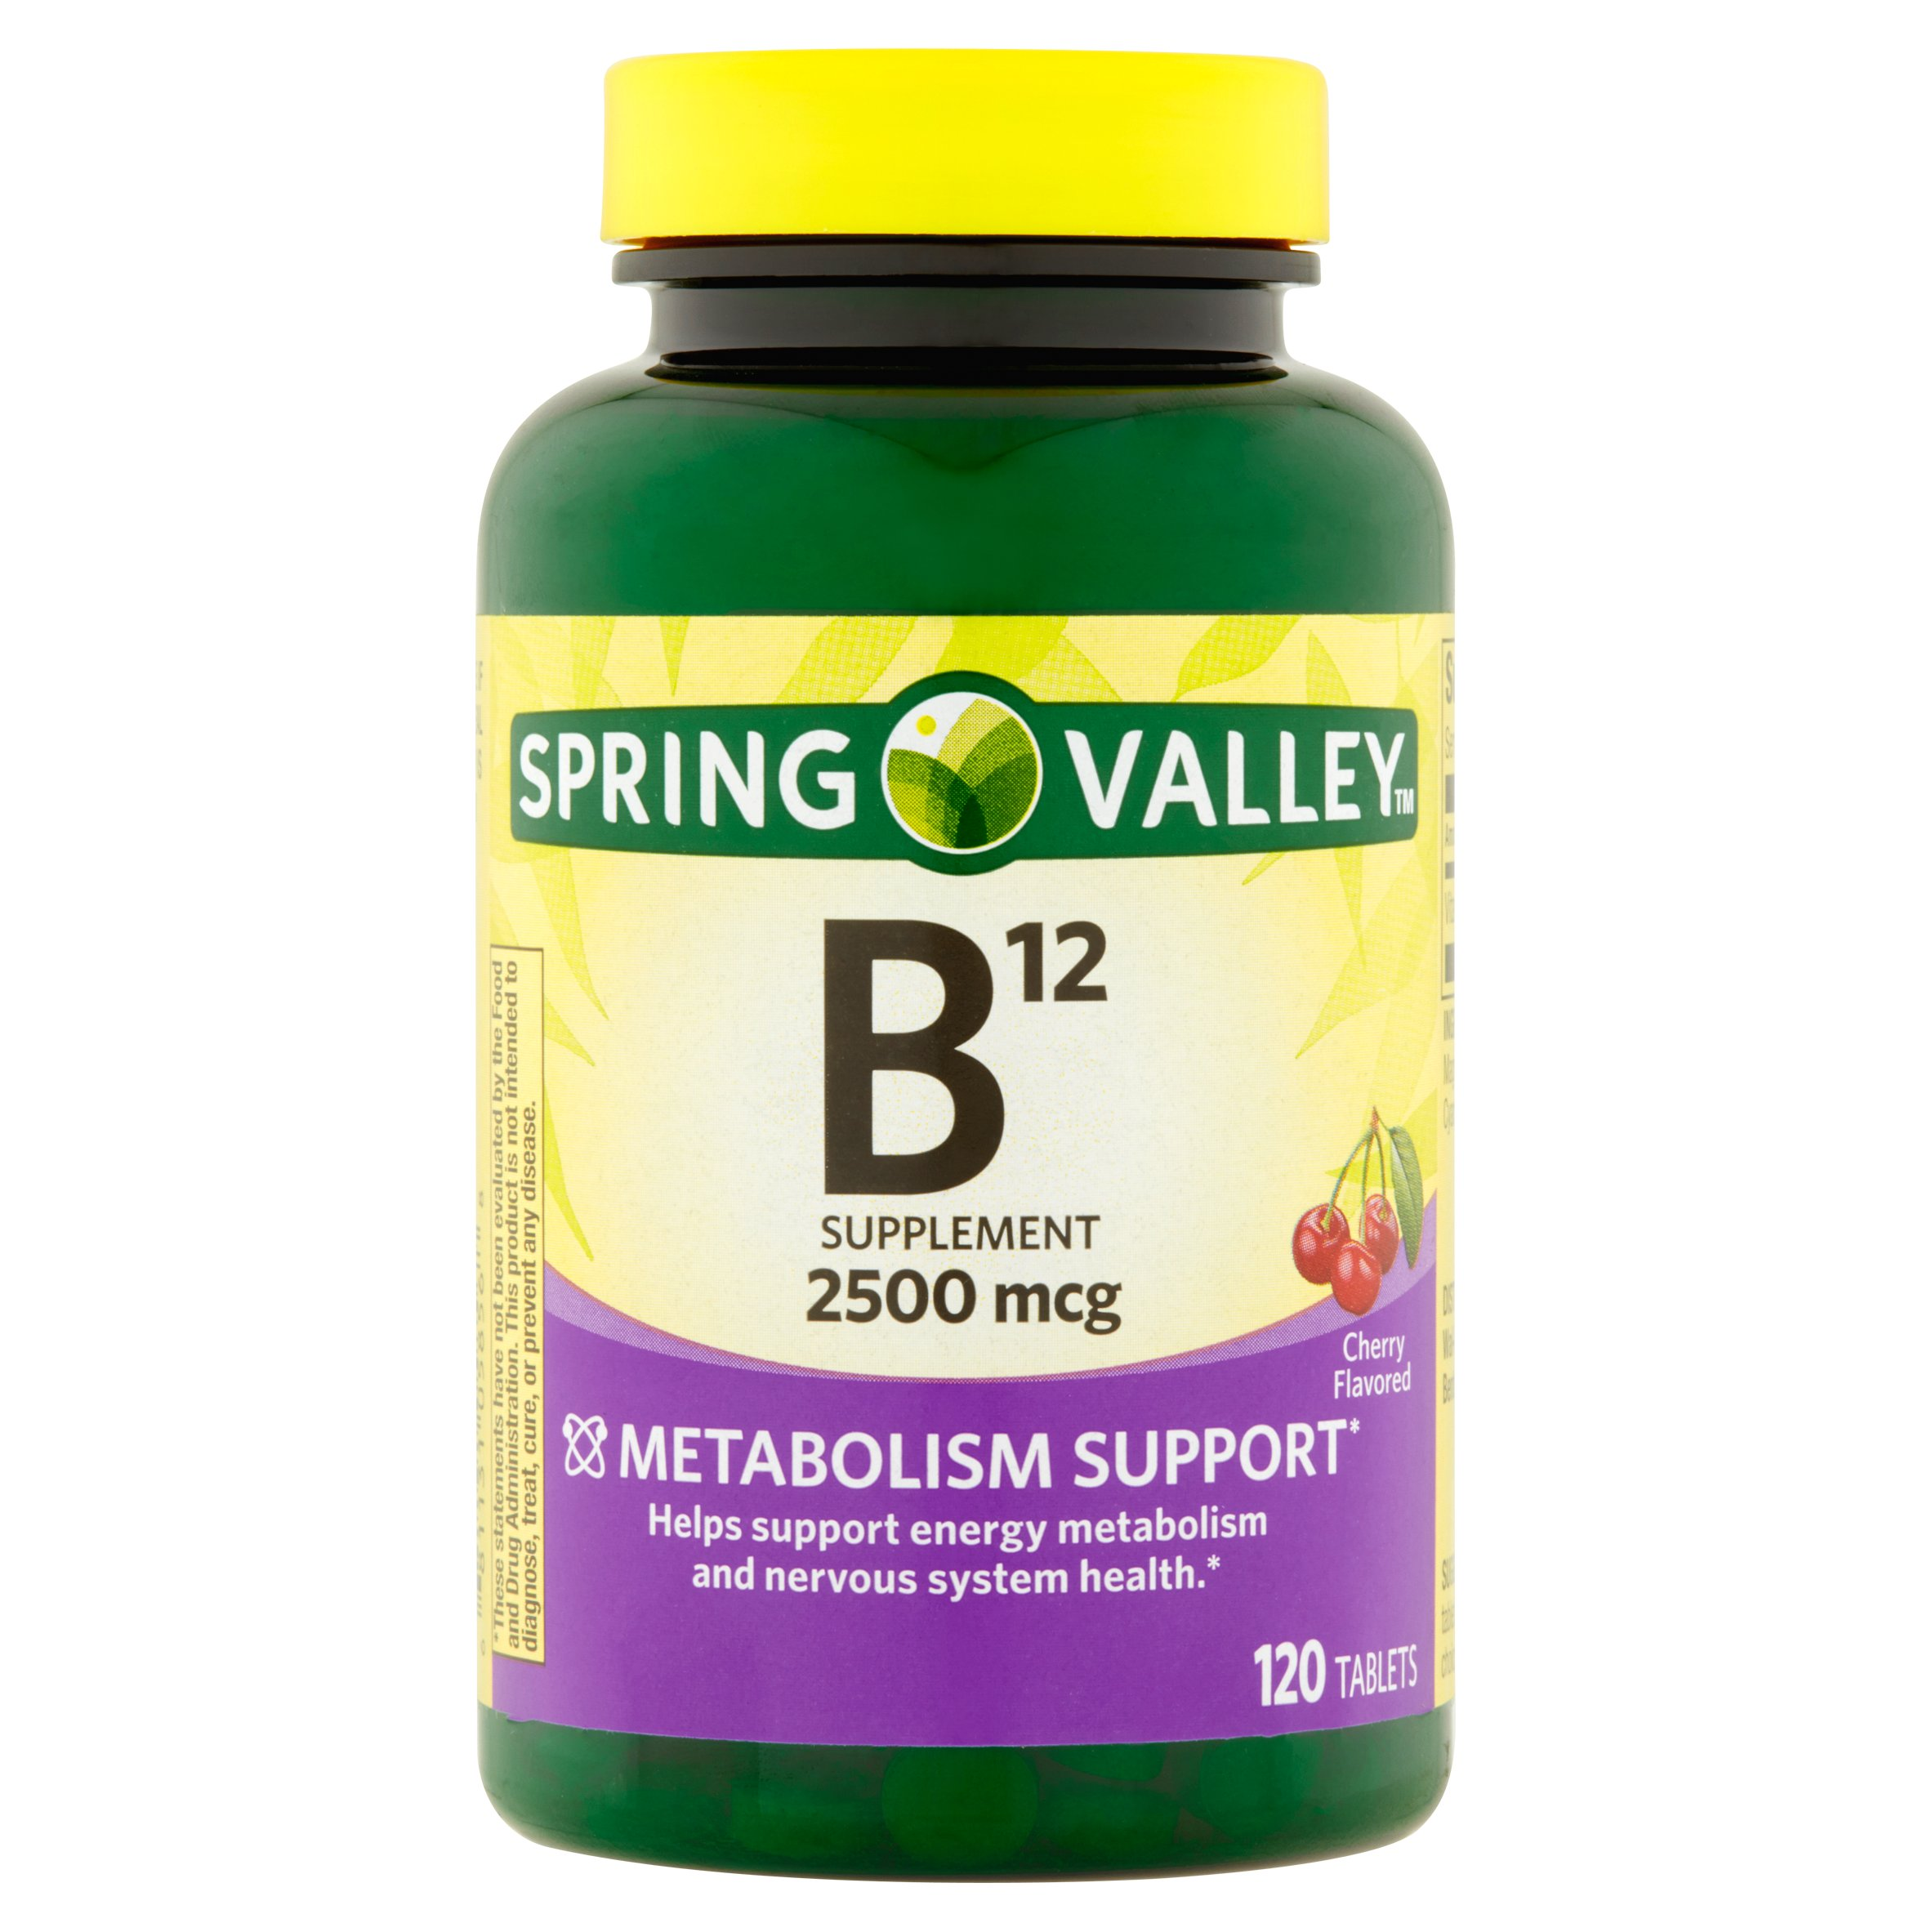 Spring Valley Sublingual B12 Vitamin Supplement Microlozenges, 2500mcg, 120 count